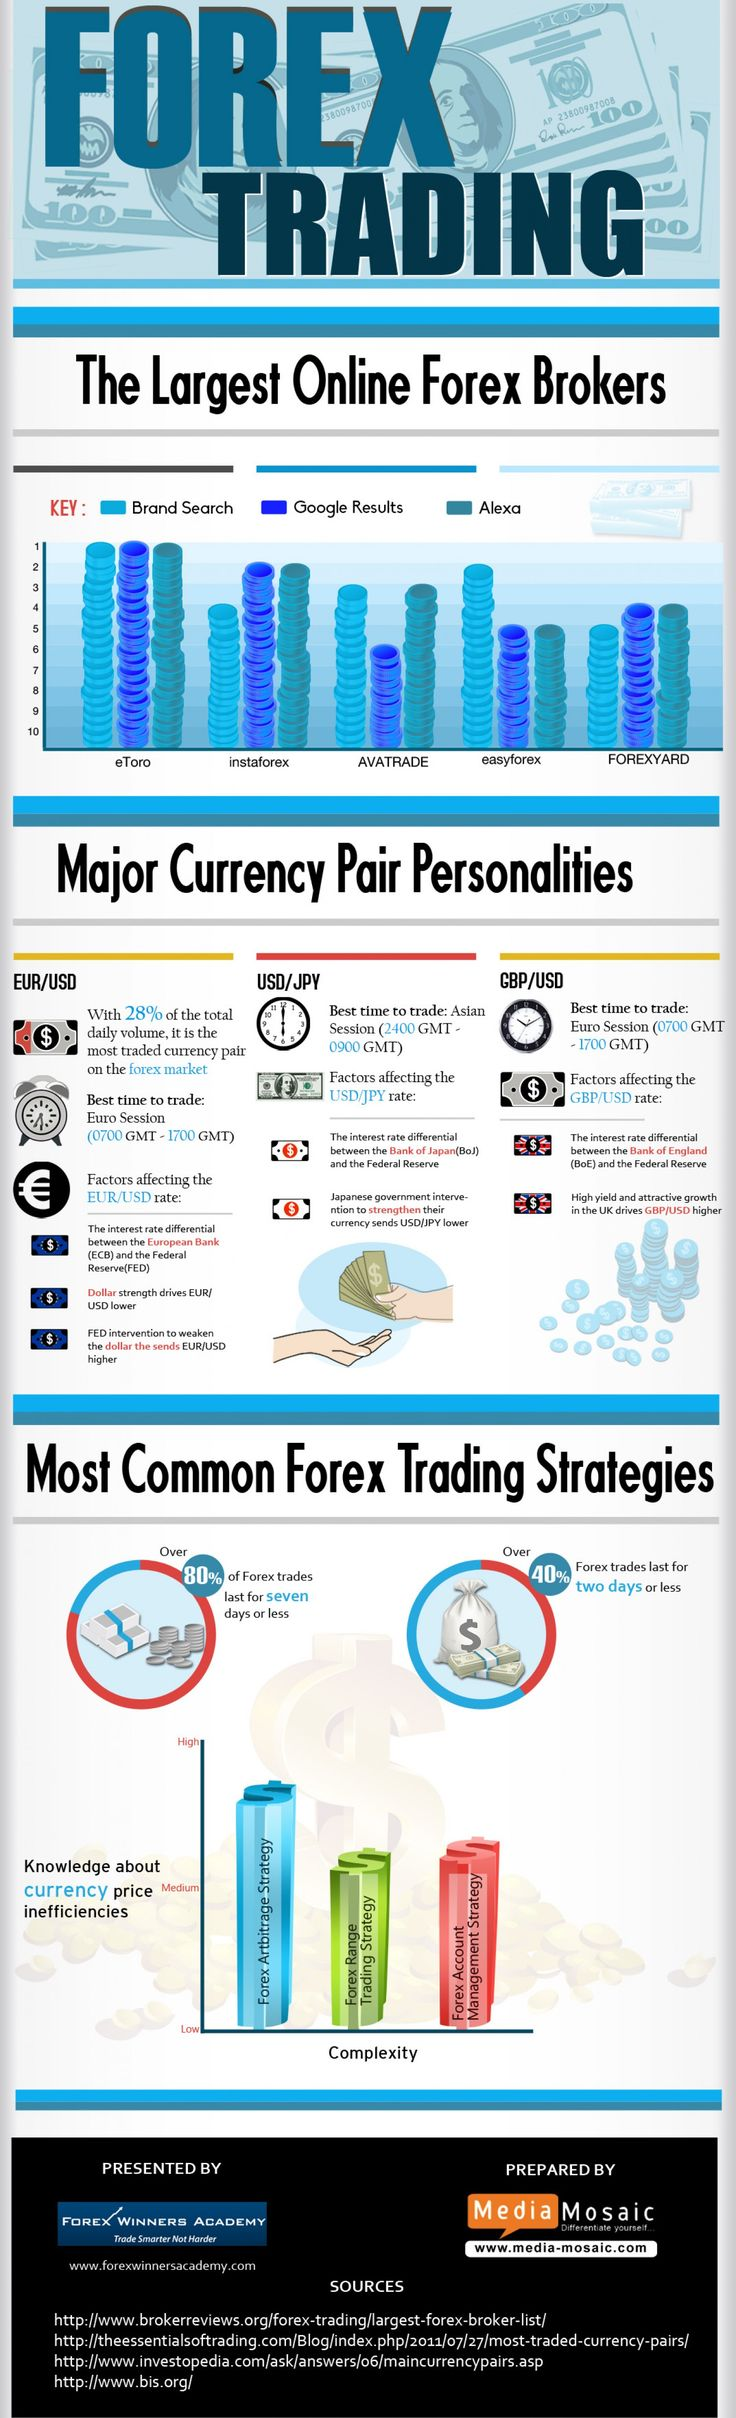 Forex online rate trading quote strategy 31